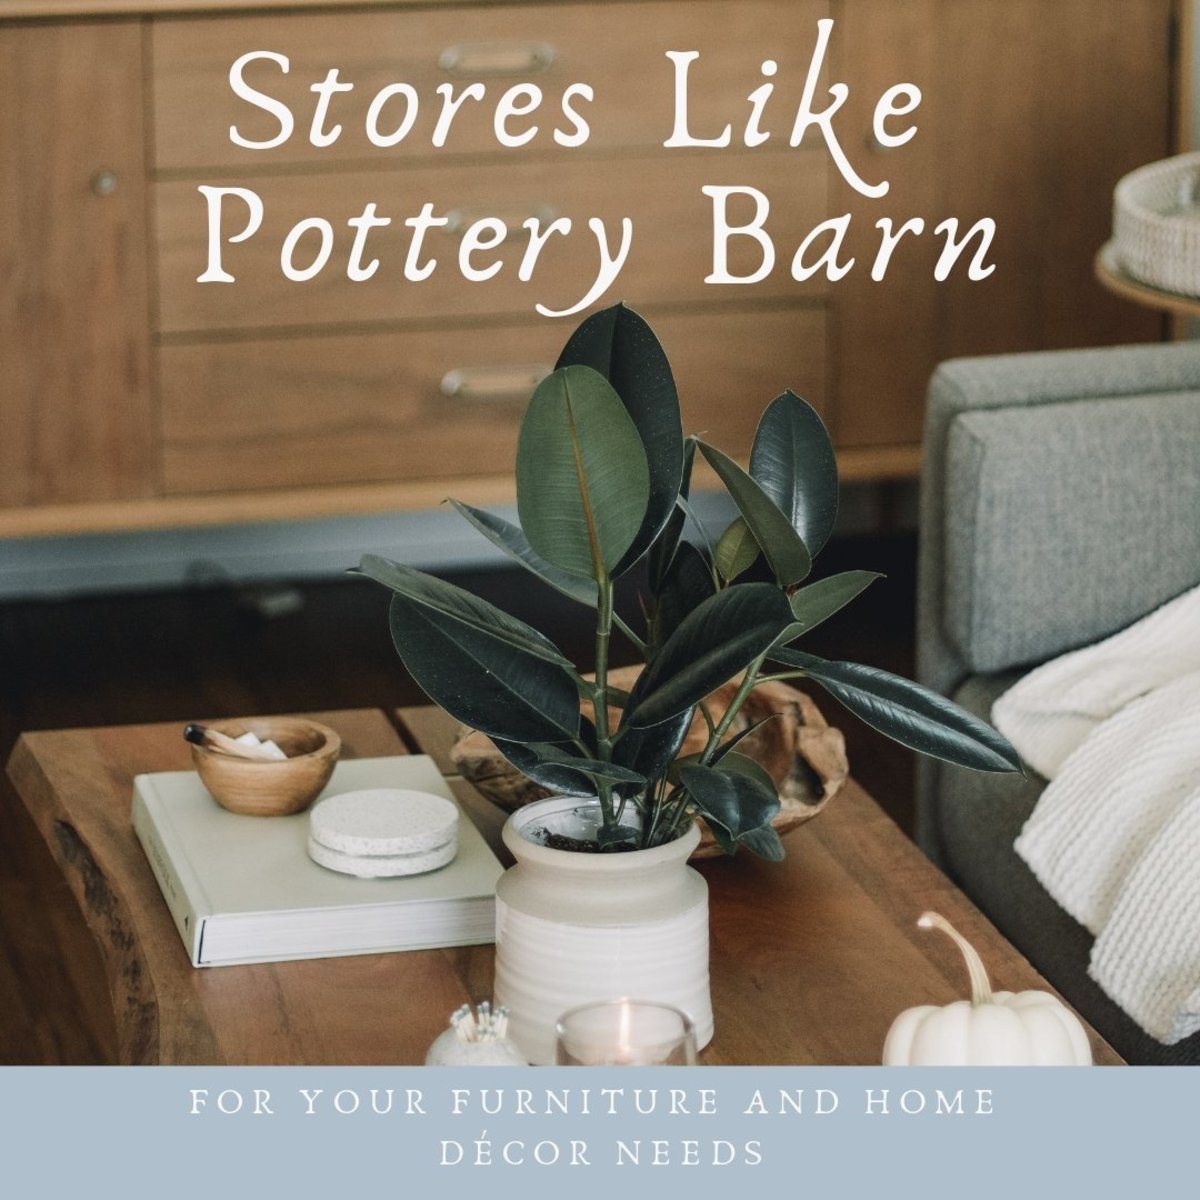 8 Great Stores Like Pottery Barn | Dengarden